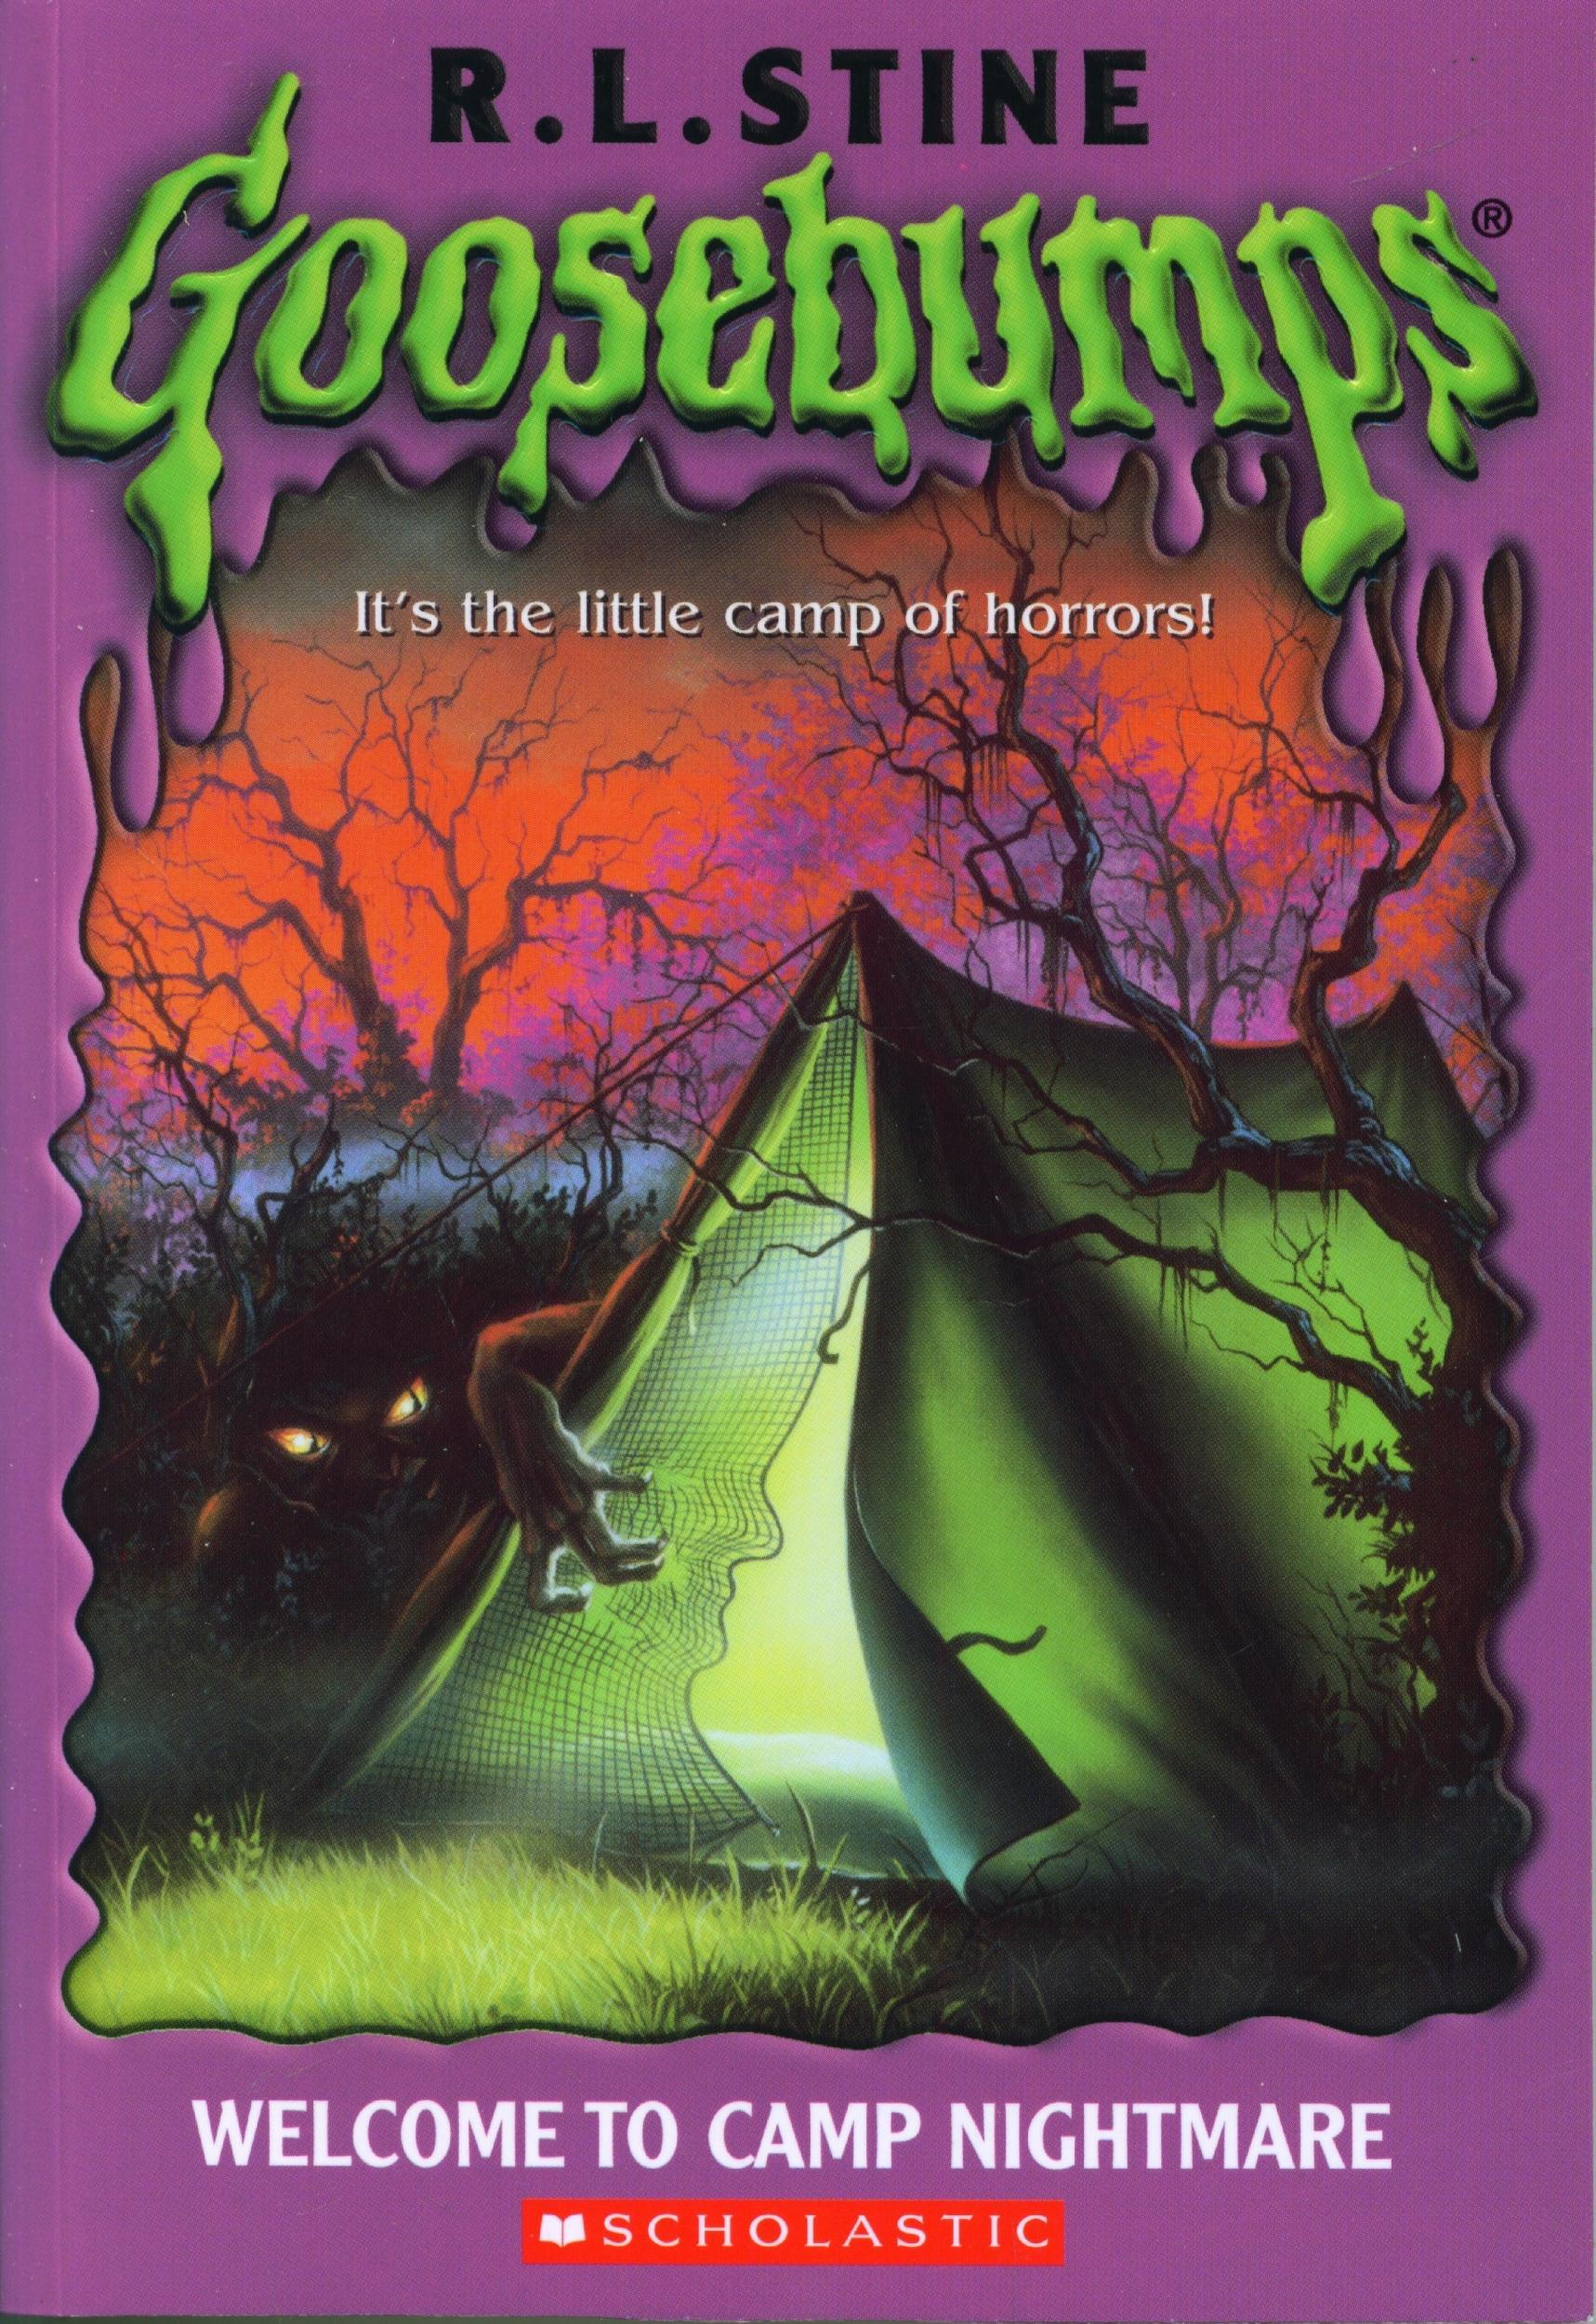 Watch Goosebumps books were the most important books of the 90s video